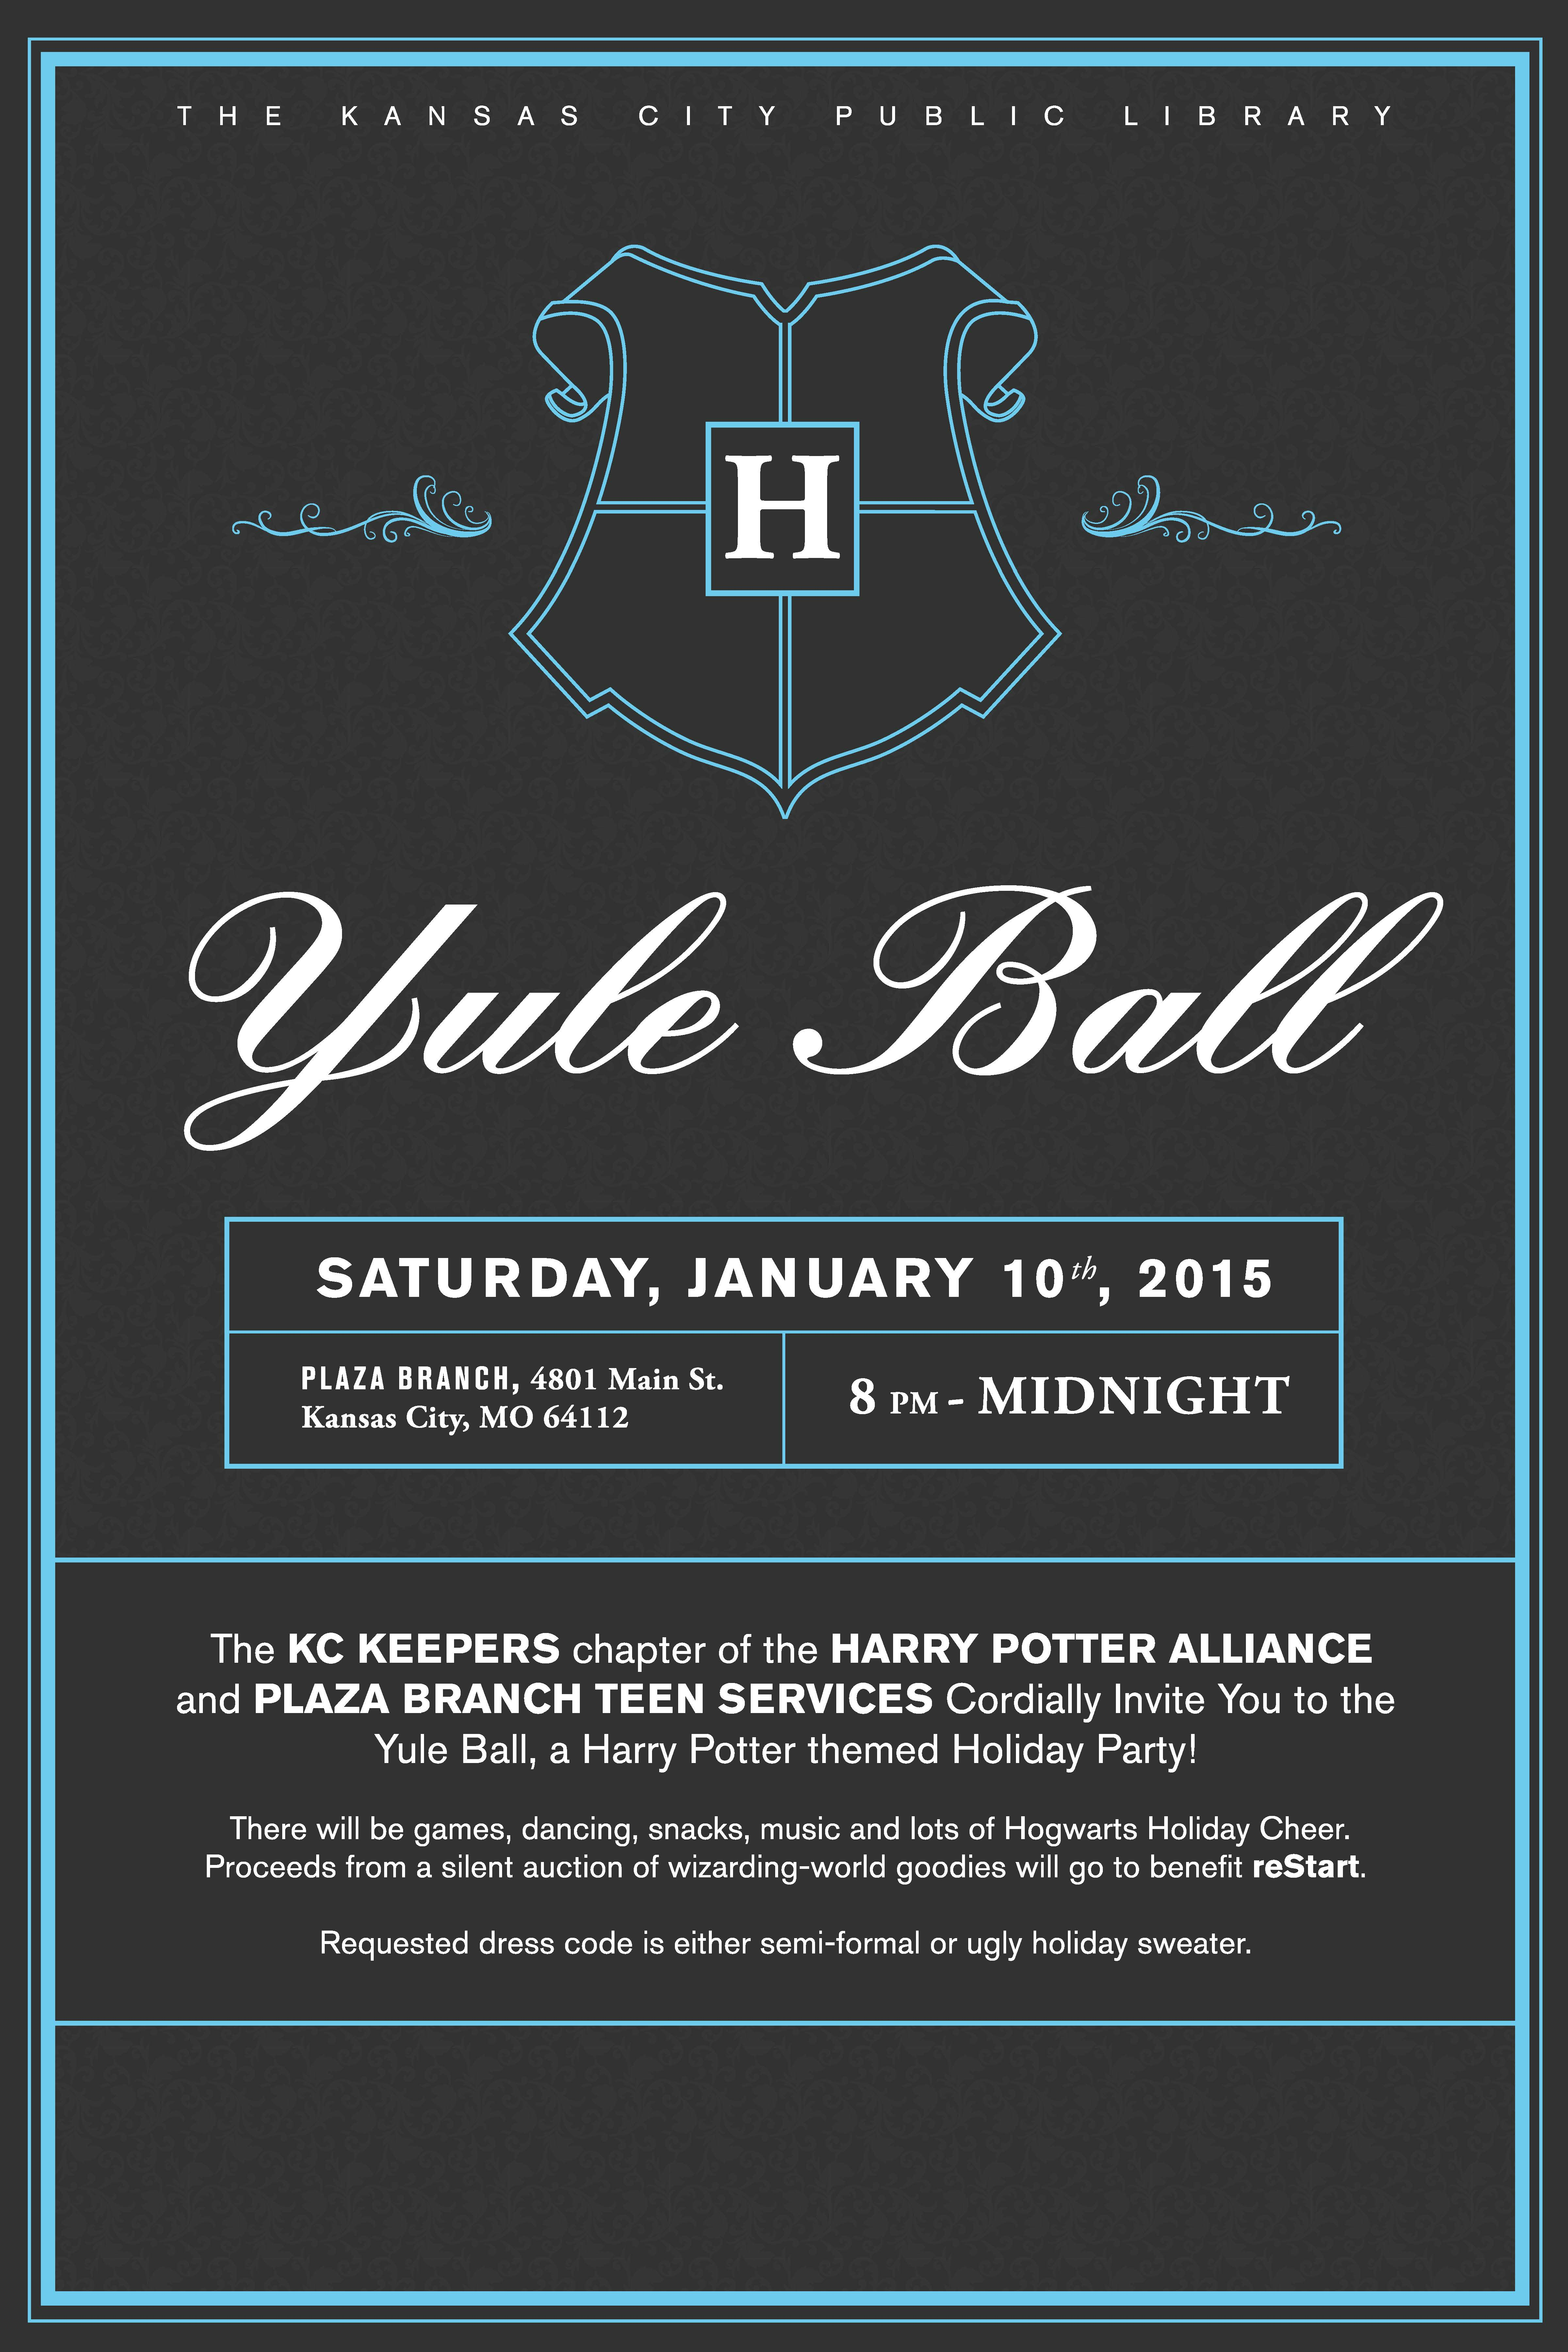 You Are Cordially Invited To The Yule Ball Kansas City Public Library